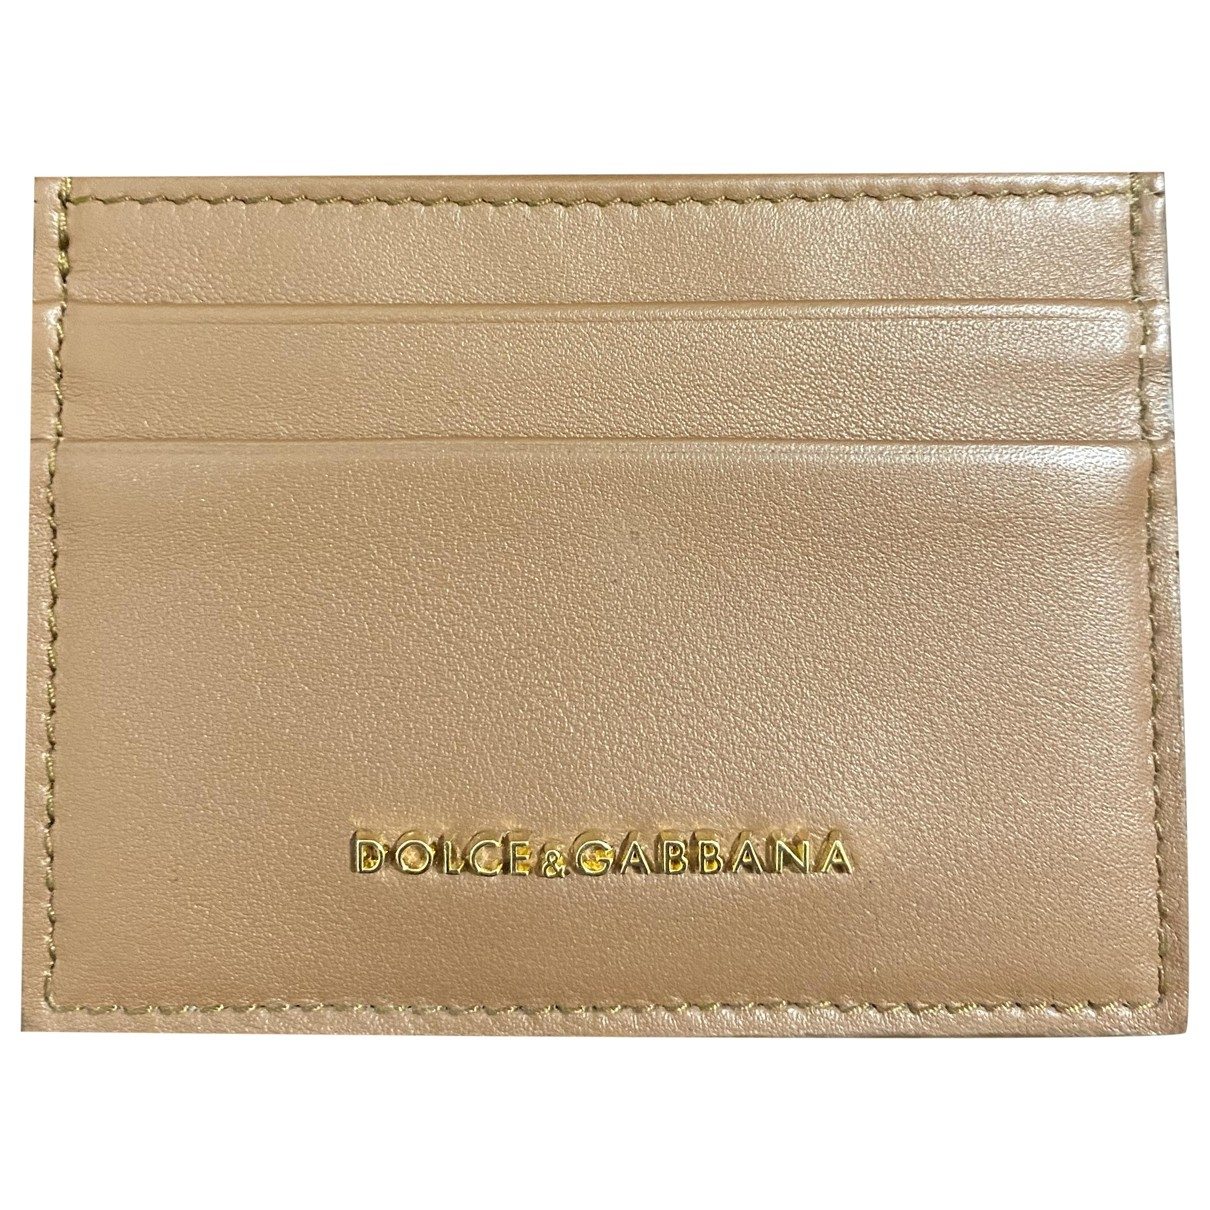 Dolce & Gabbana \N Brown Leather Purses, wallet & cases for Women \N